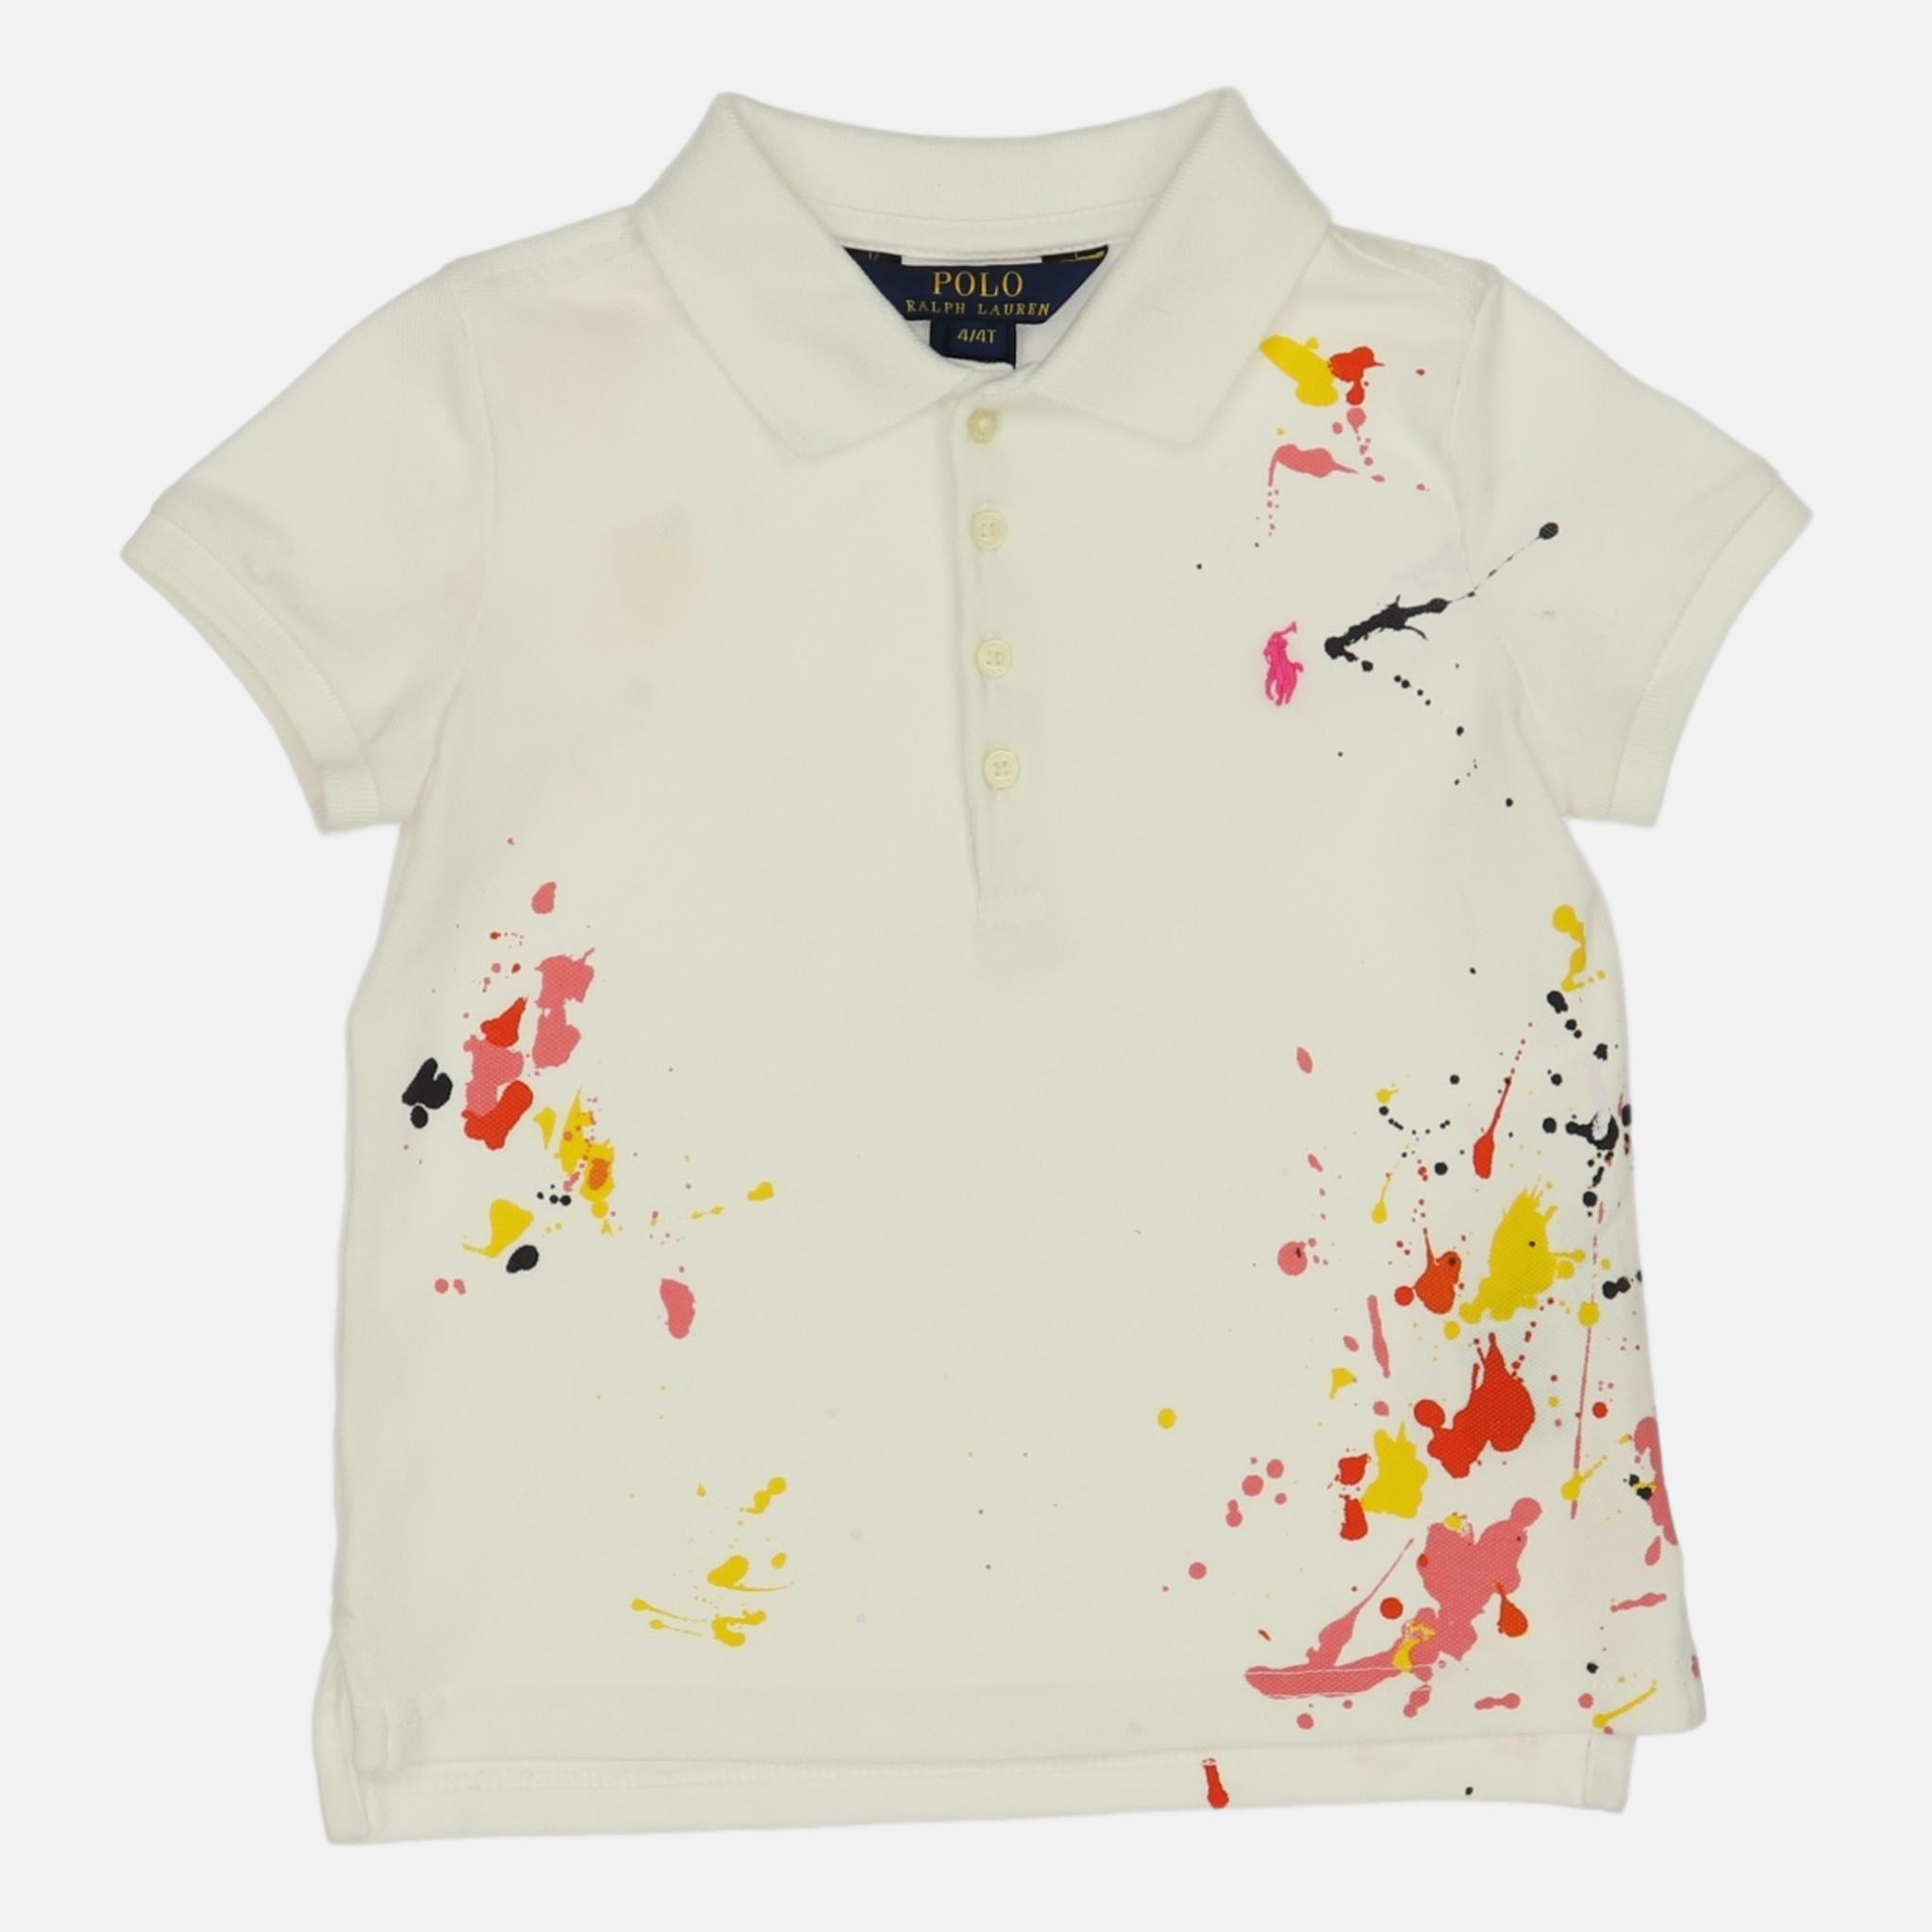 Polo Shirt, 4-5 years